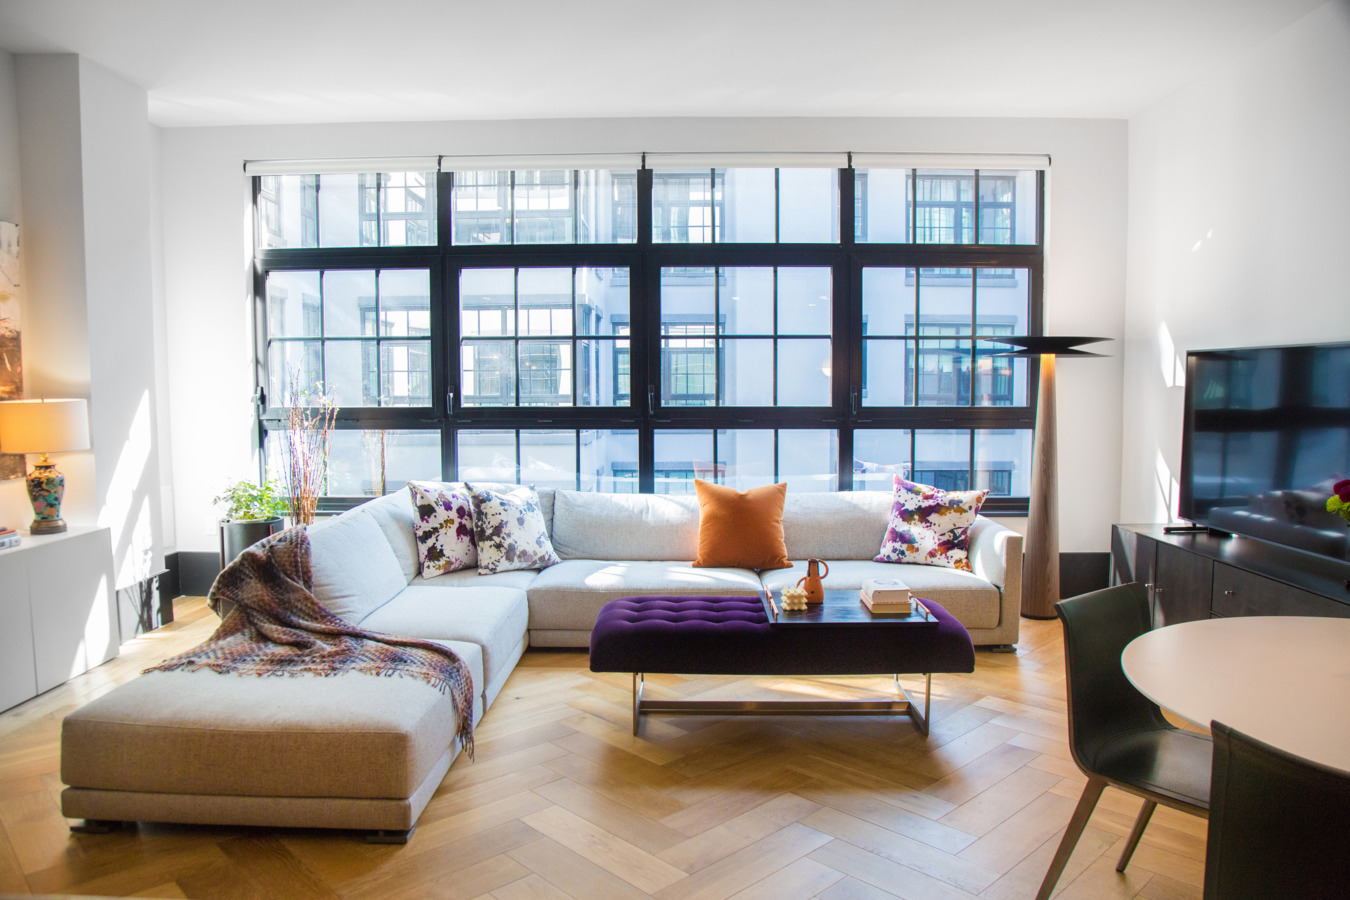 Un appartement contemporain à Brooklyn aux touches rétro chic